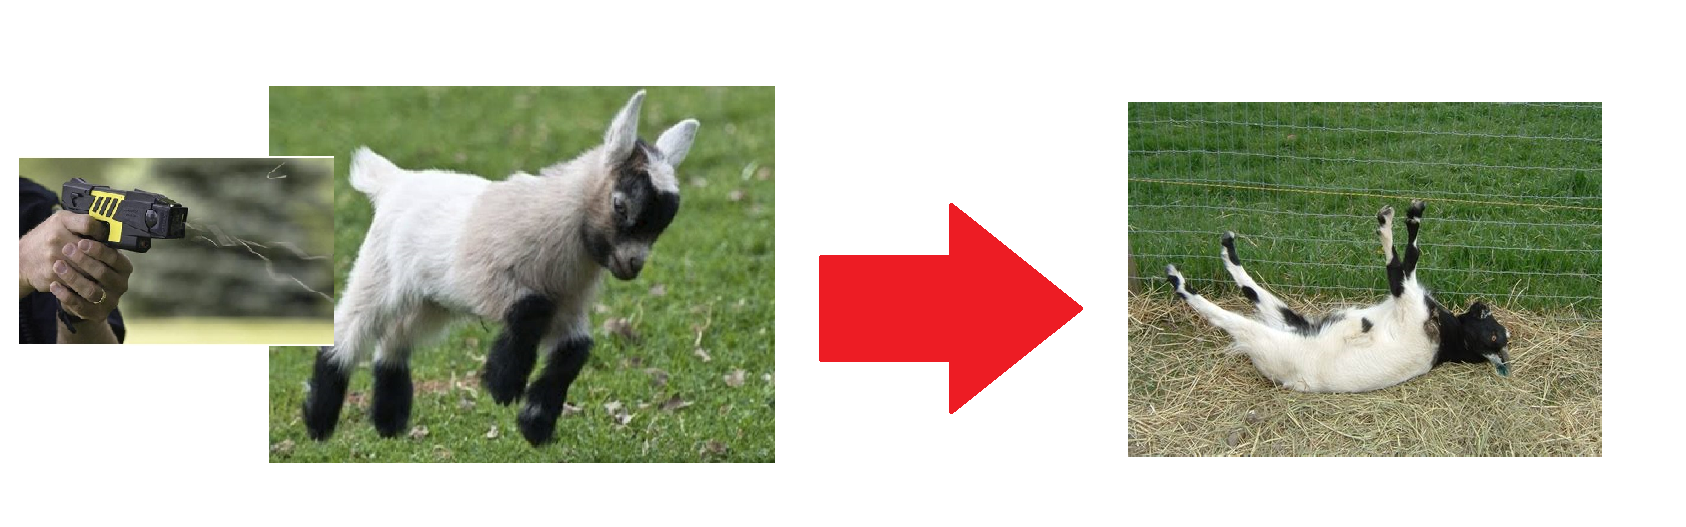 Remove Goat.png